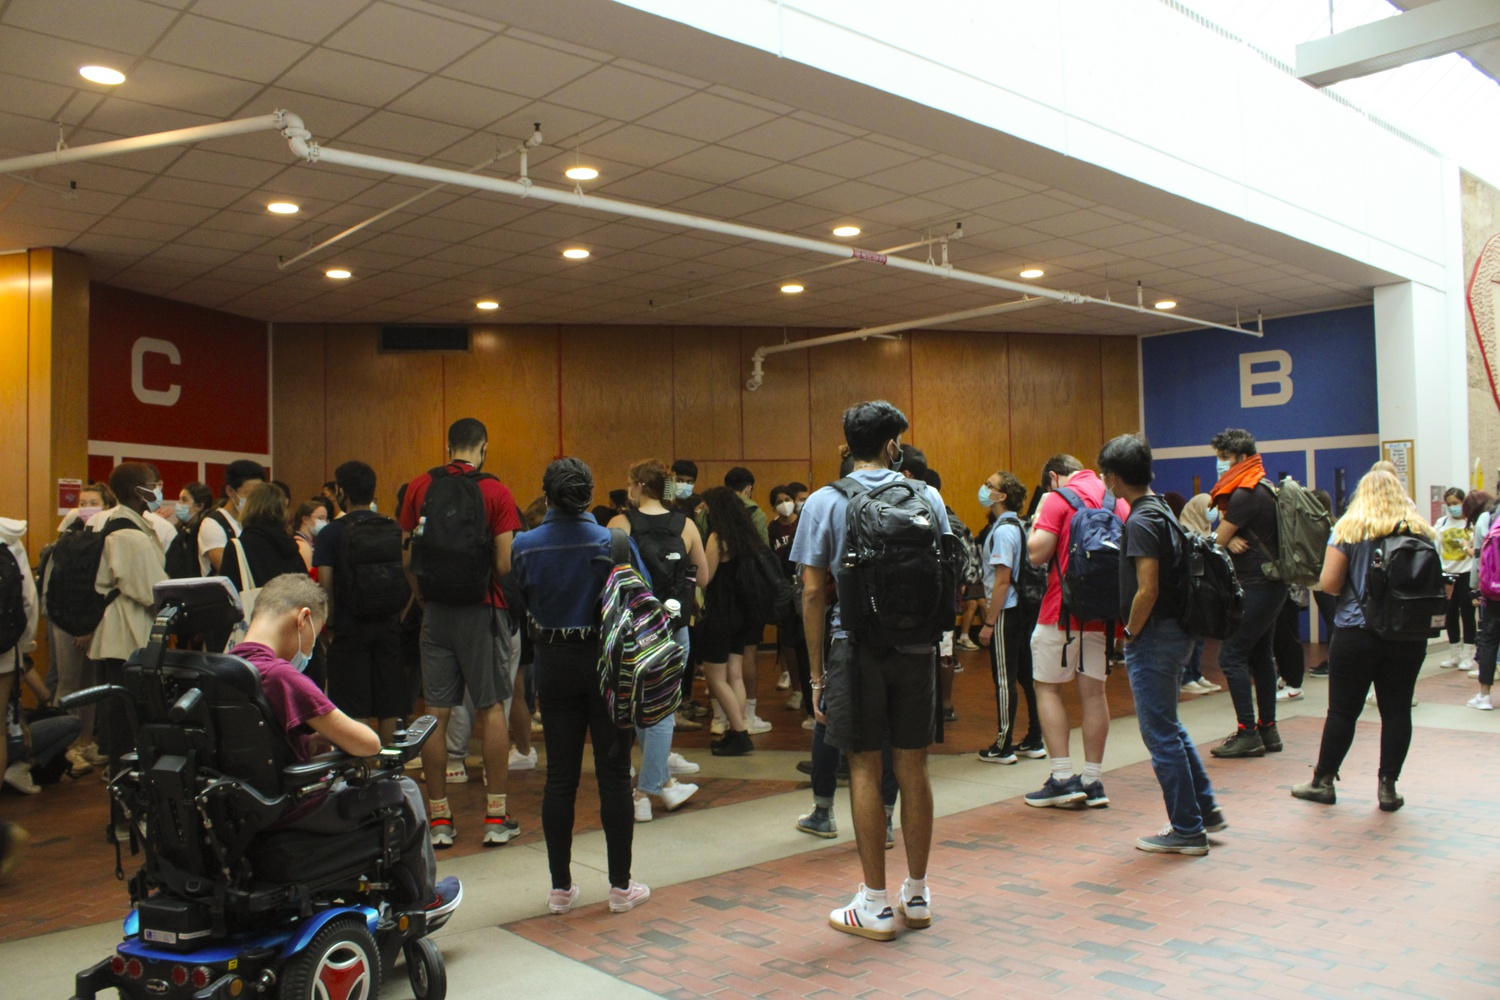 Students wait outside of lecture hall C for Life Sciences 1a in the Science Center.